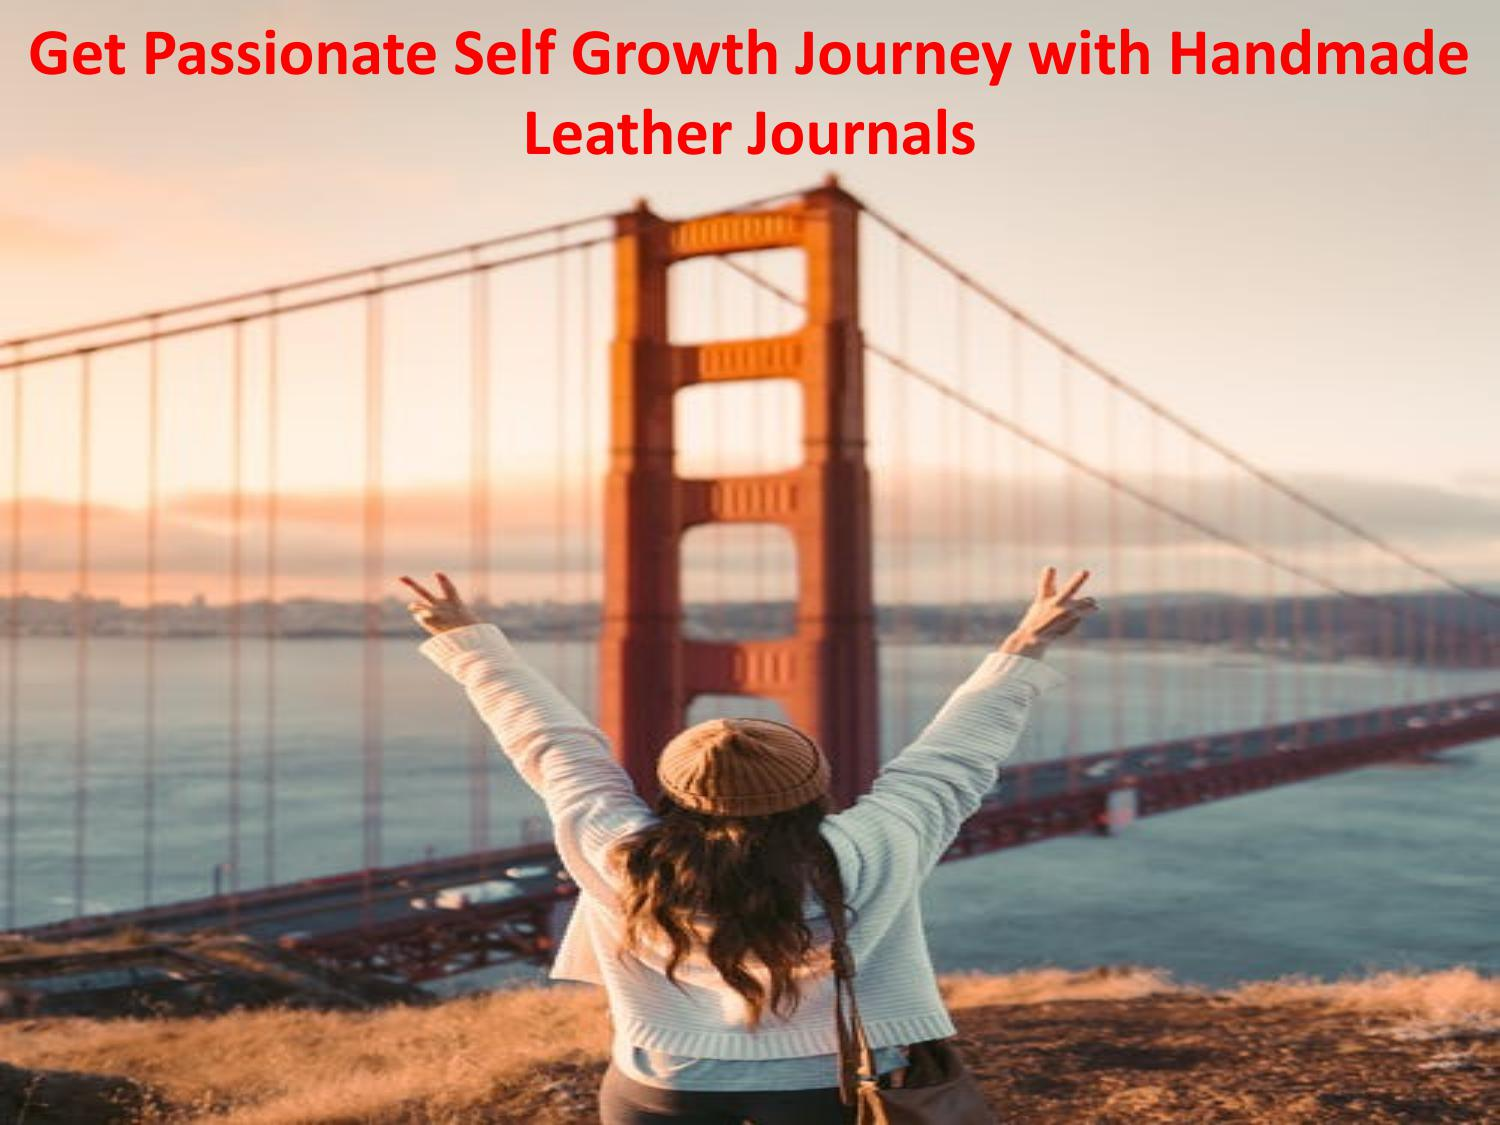 Get Passionate Self Growth Journey with Handmade Leather Journals